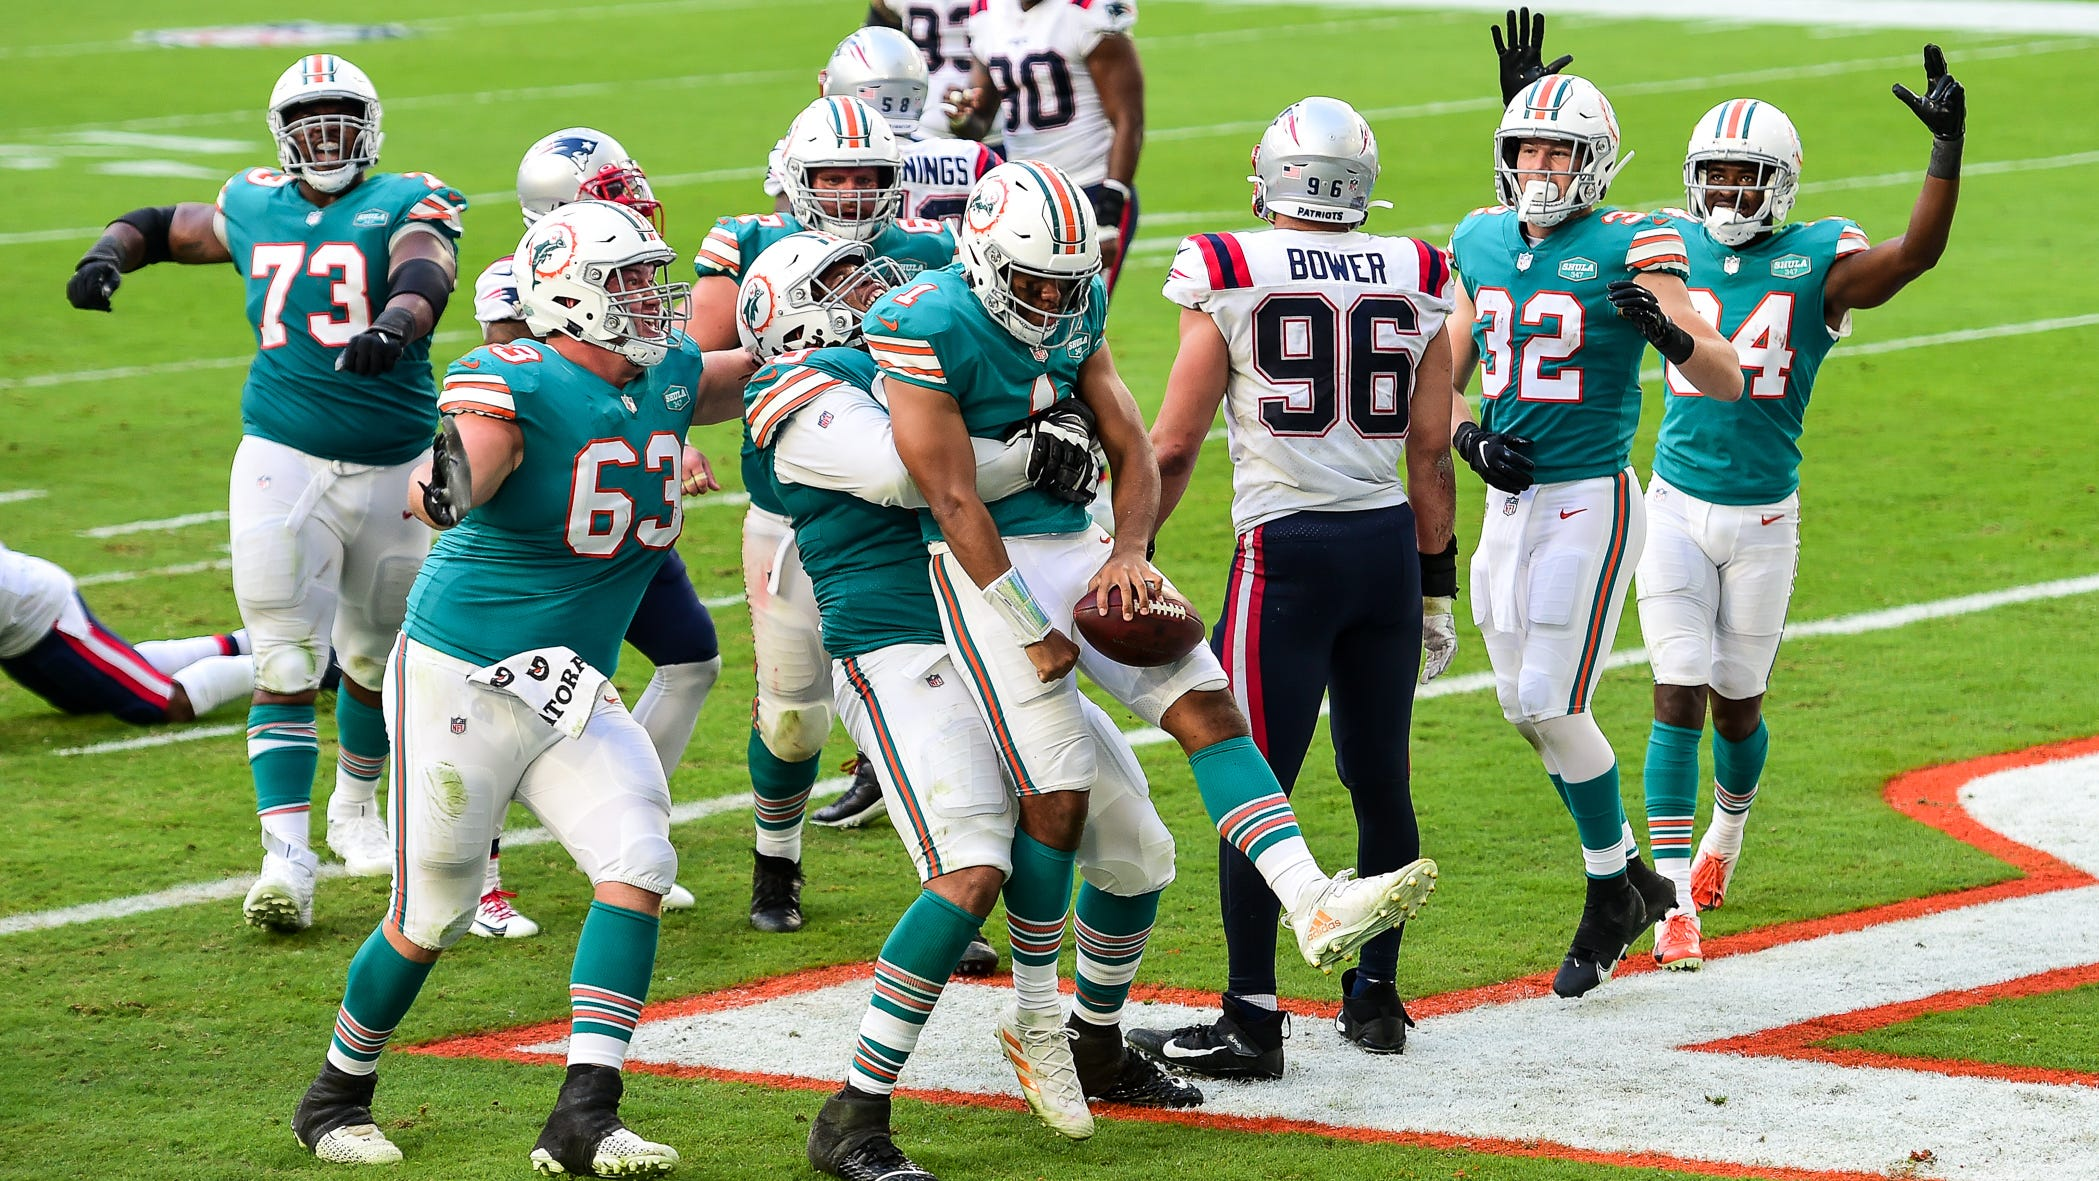 Miami Dolphins and Tua Tagovailoa: The Tape Don't Lie vs. Pats